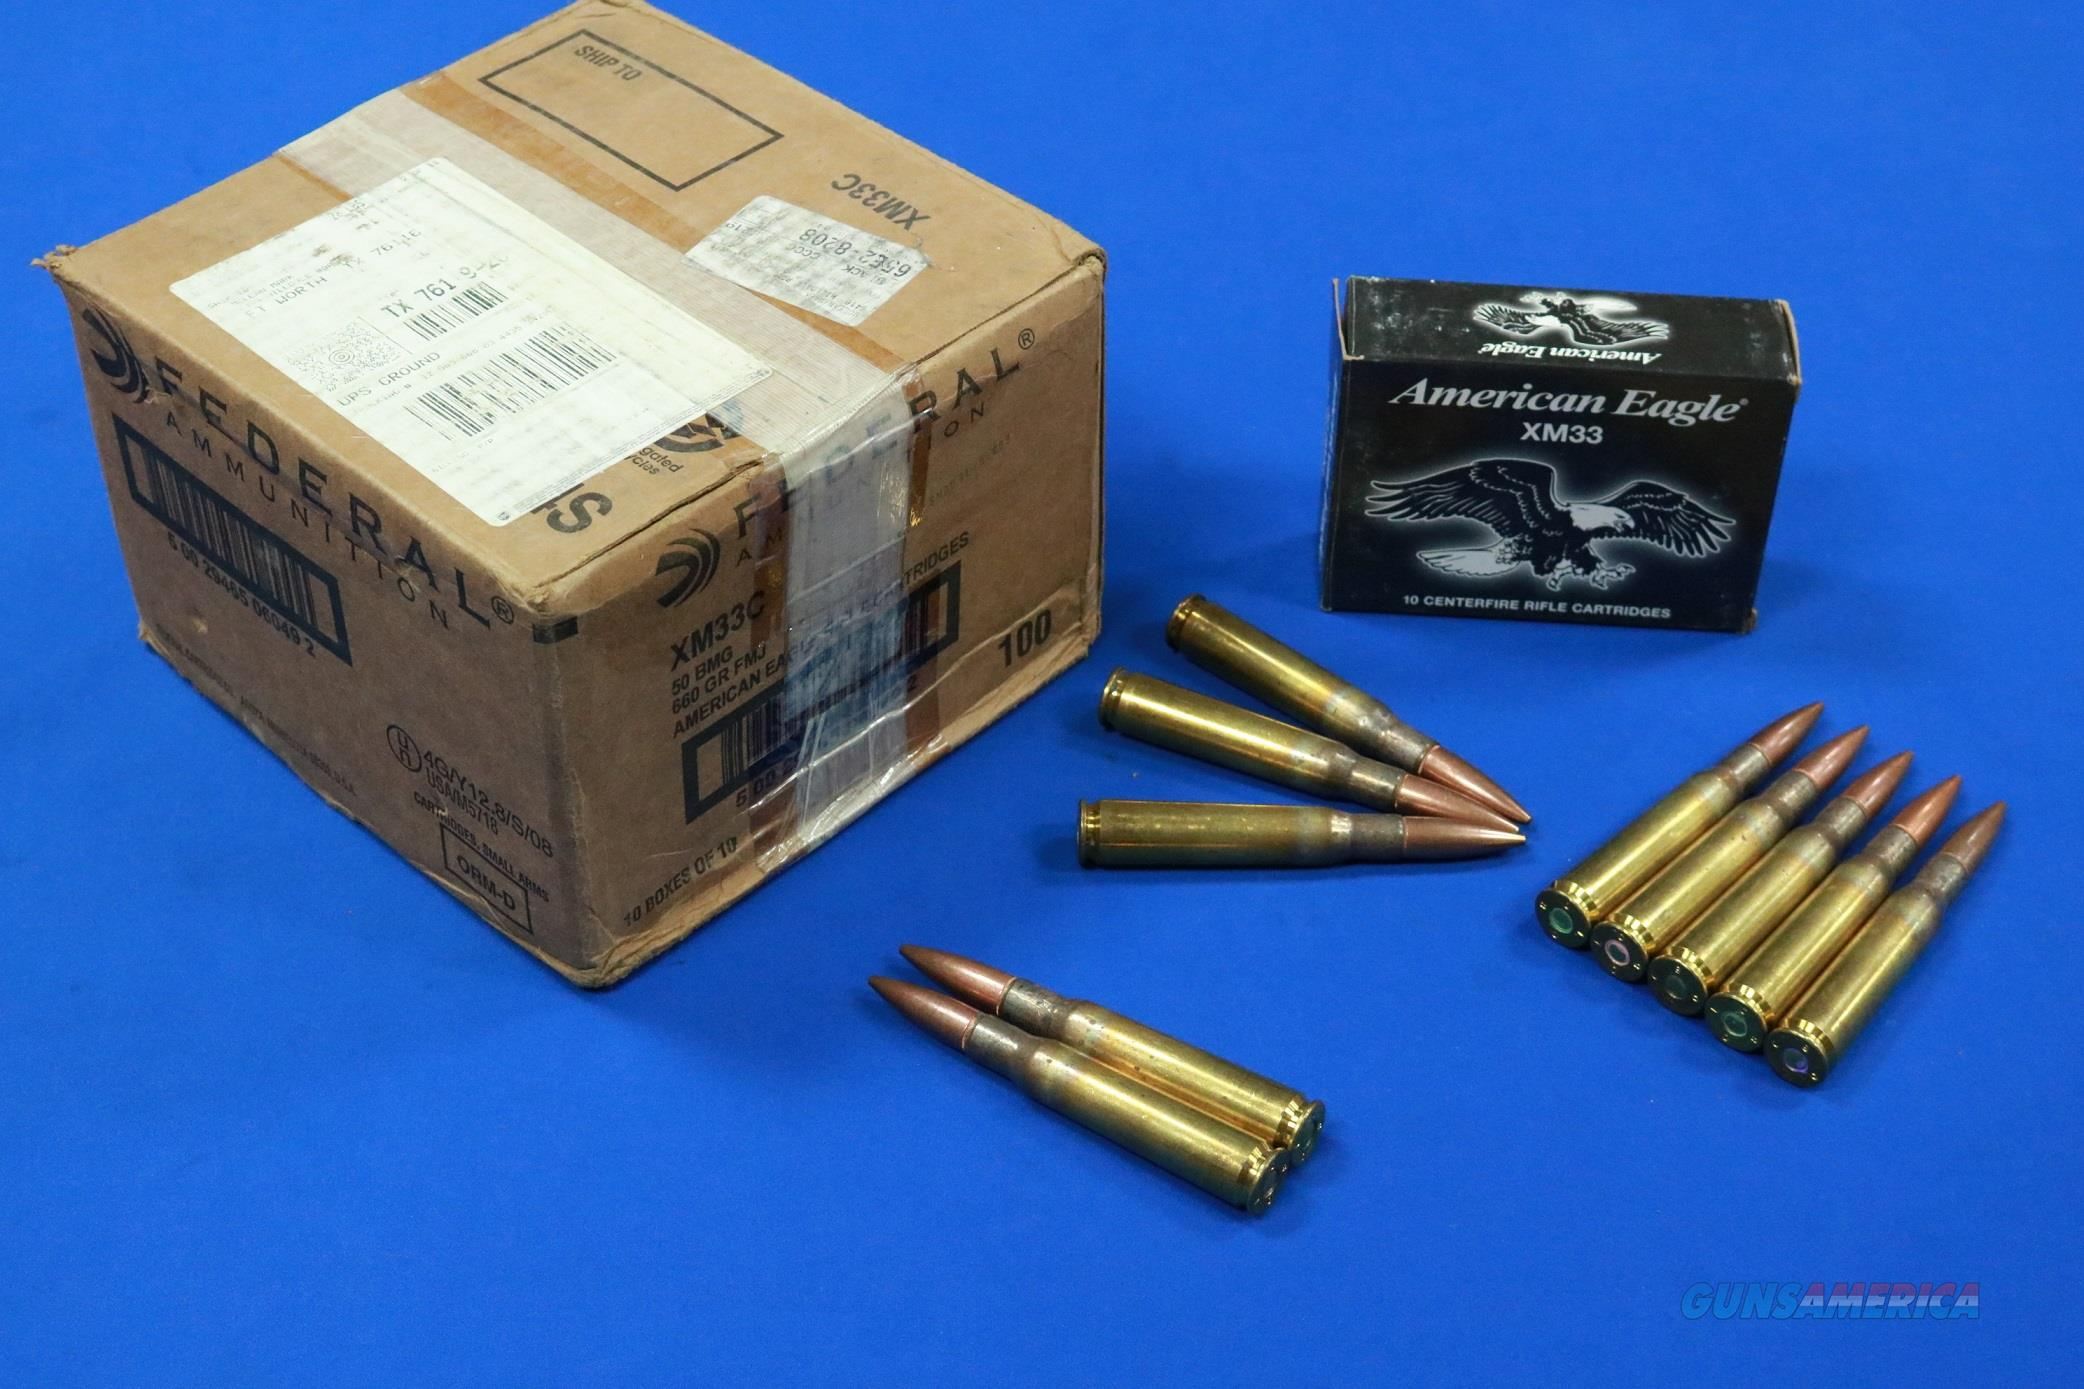 FEDERAL .50 BMG BALL XM33C 660 gr FMJ  100 ROUND CASE  Non-Guns > Ammunition